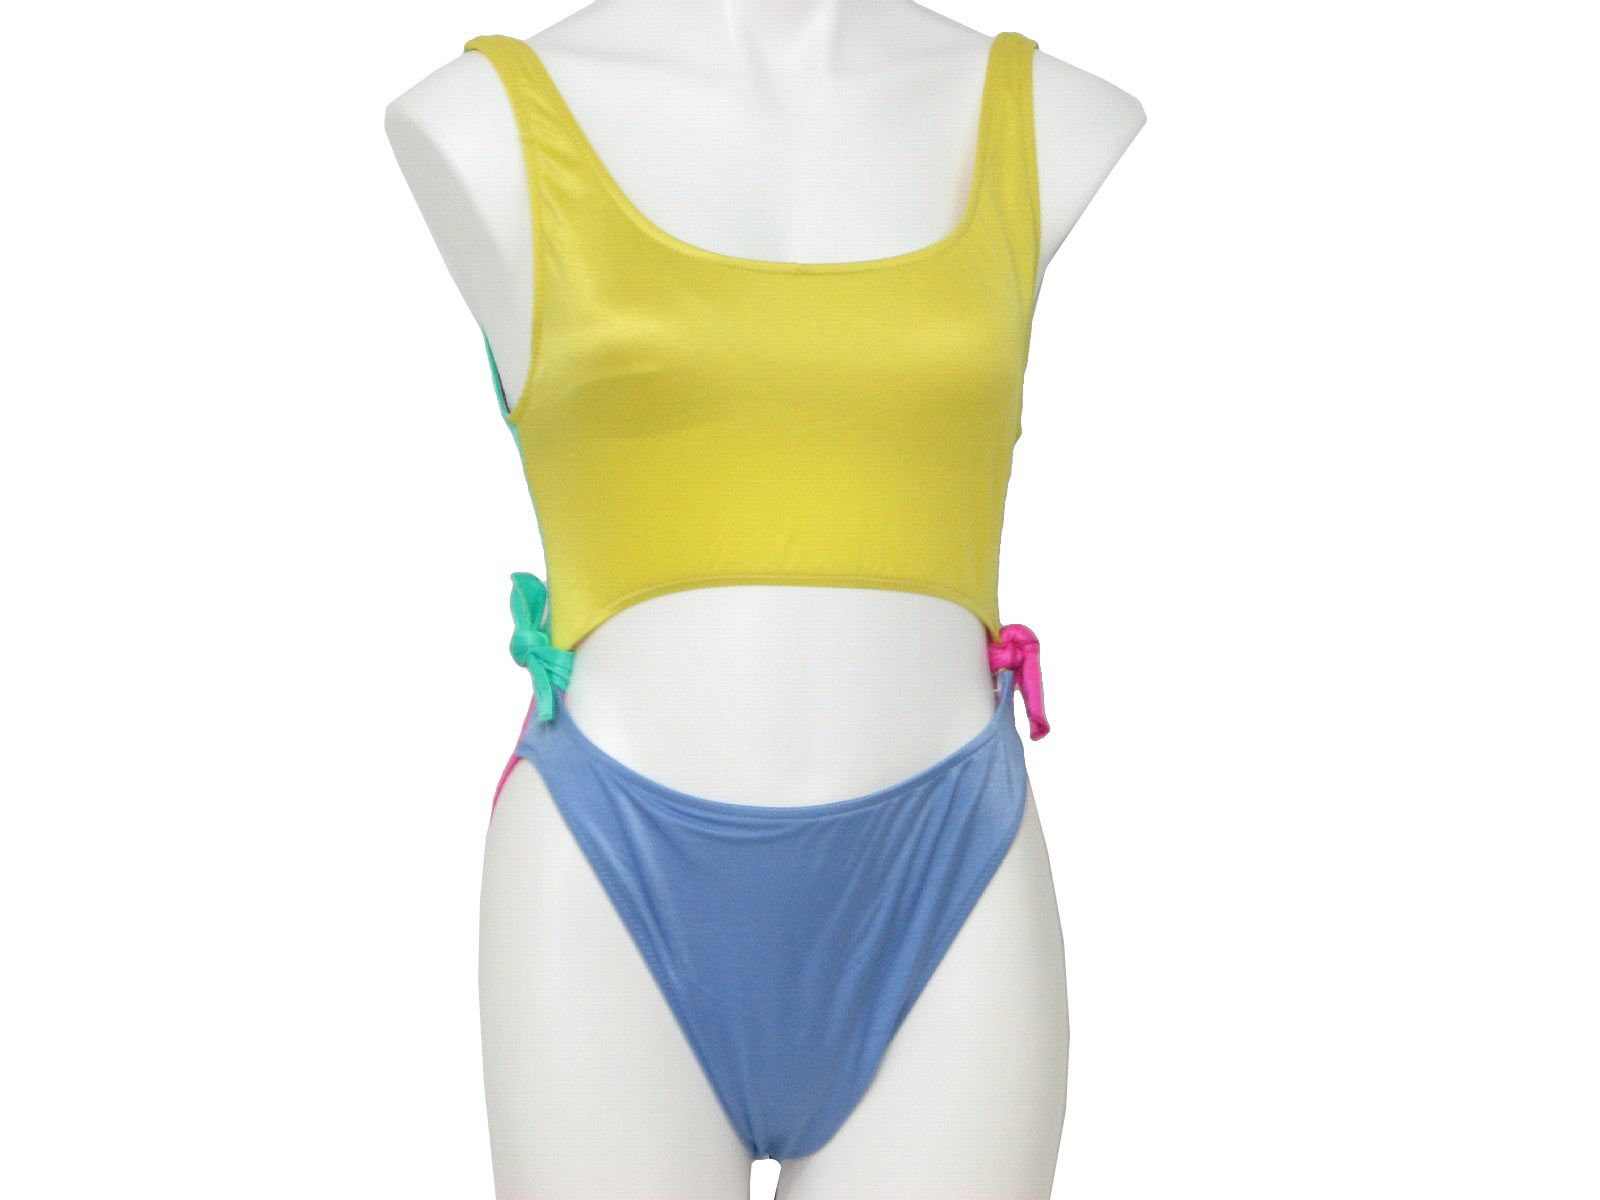 I remember these swimsuits!